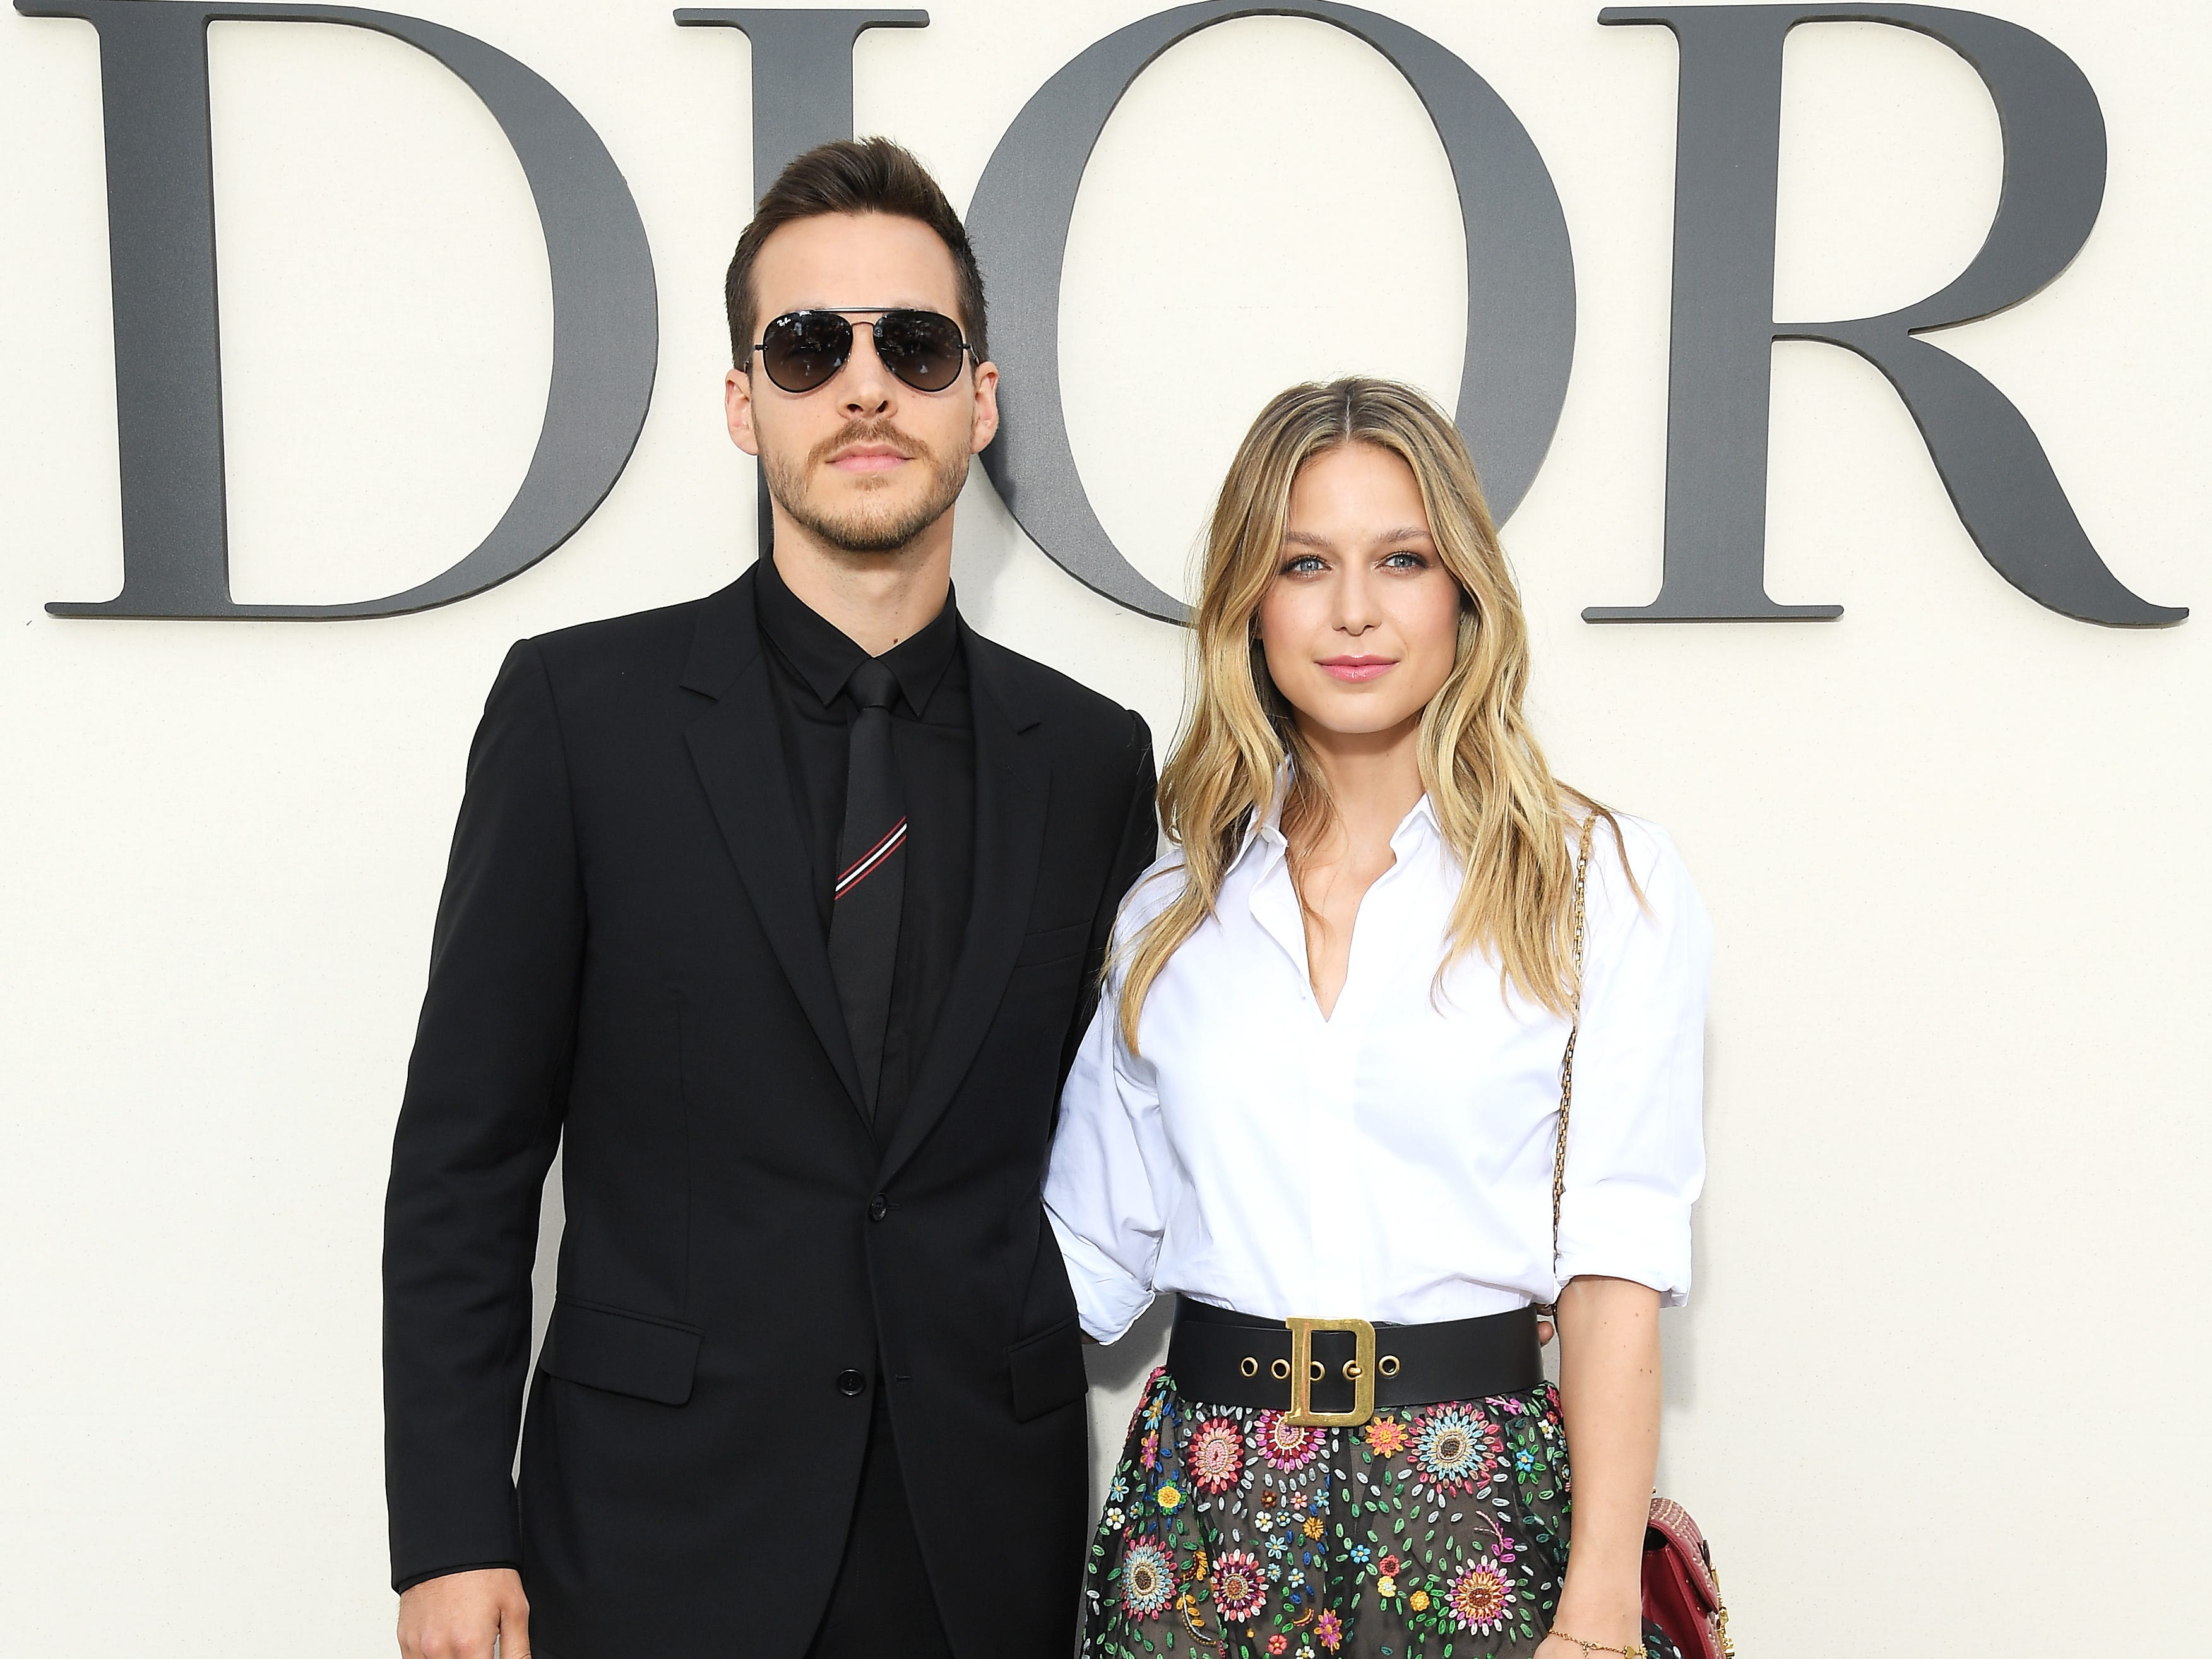 PARIS, FRANCE - SEPTEMBER 24:  Christopher Charles Wood and Melissa Benoist attend the Christian Dior show as part of the Paris Fashion Week Womenswear Spring/Summer 2019 on September 24, 2018 in Paris, France.  (Photo by Pascal Le Segretain/Getty Images For Christian Dior) ORG XMIT: 775231511 ORIG FILE ID: 1039320740